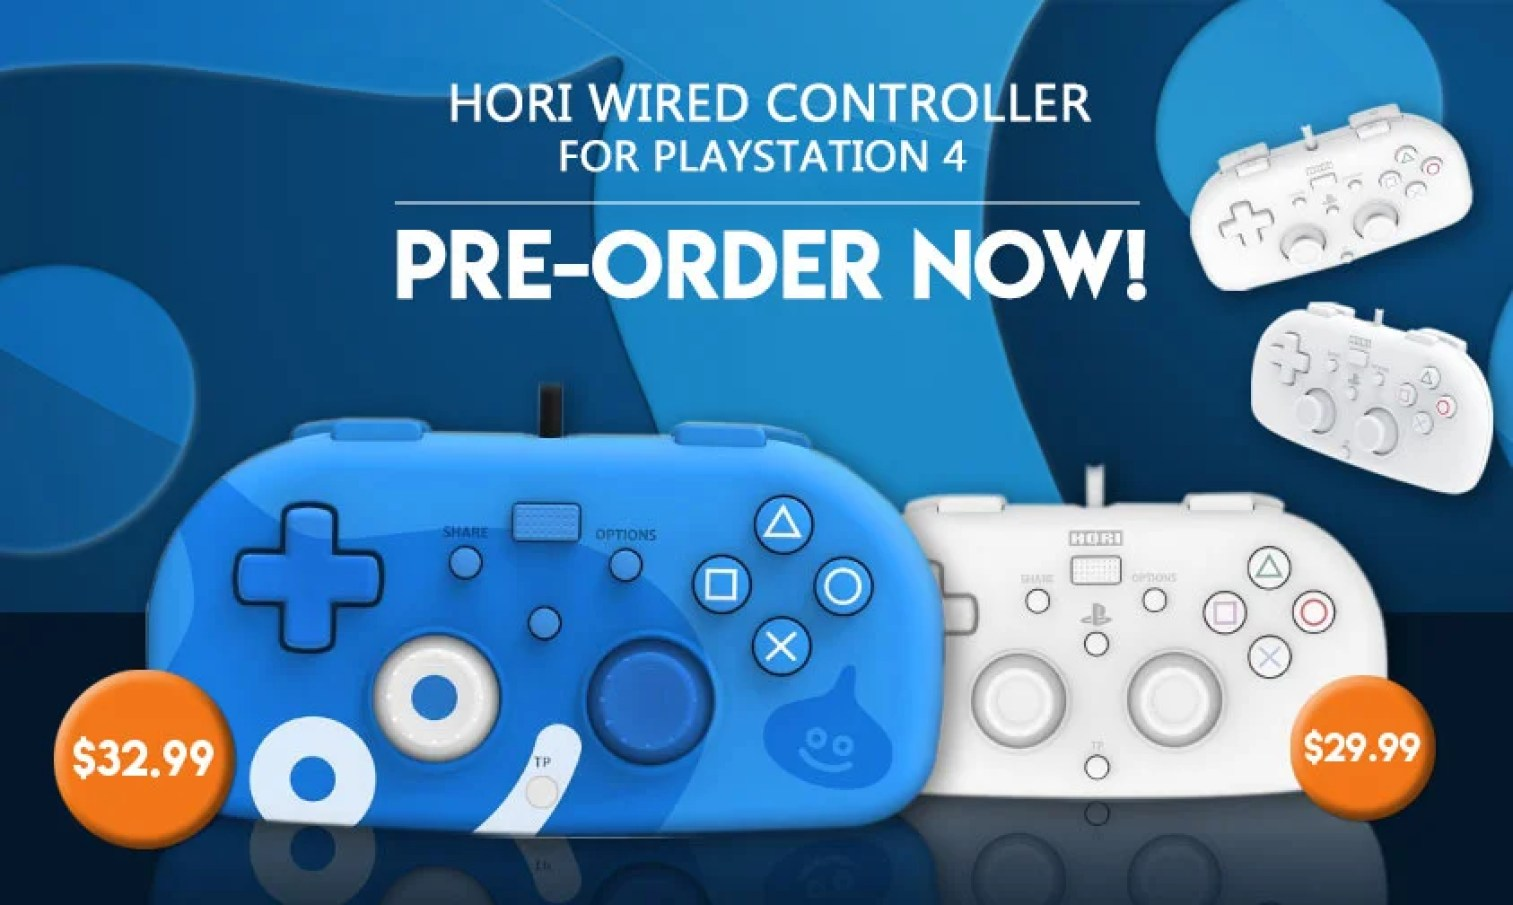 A lightweight alternative for PS4 controllers with Hori